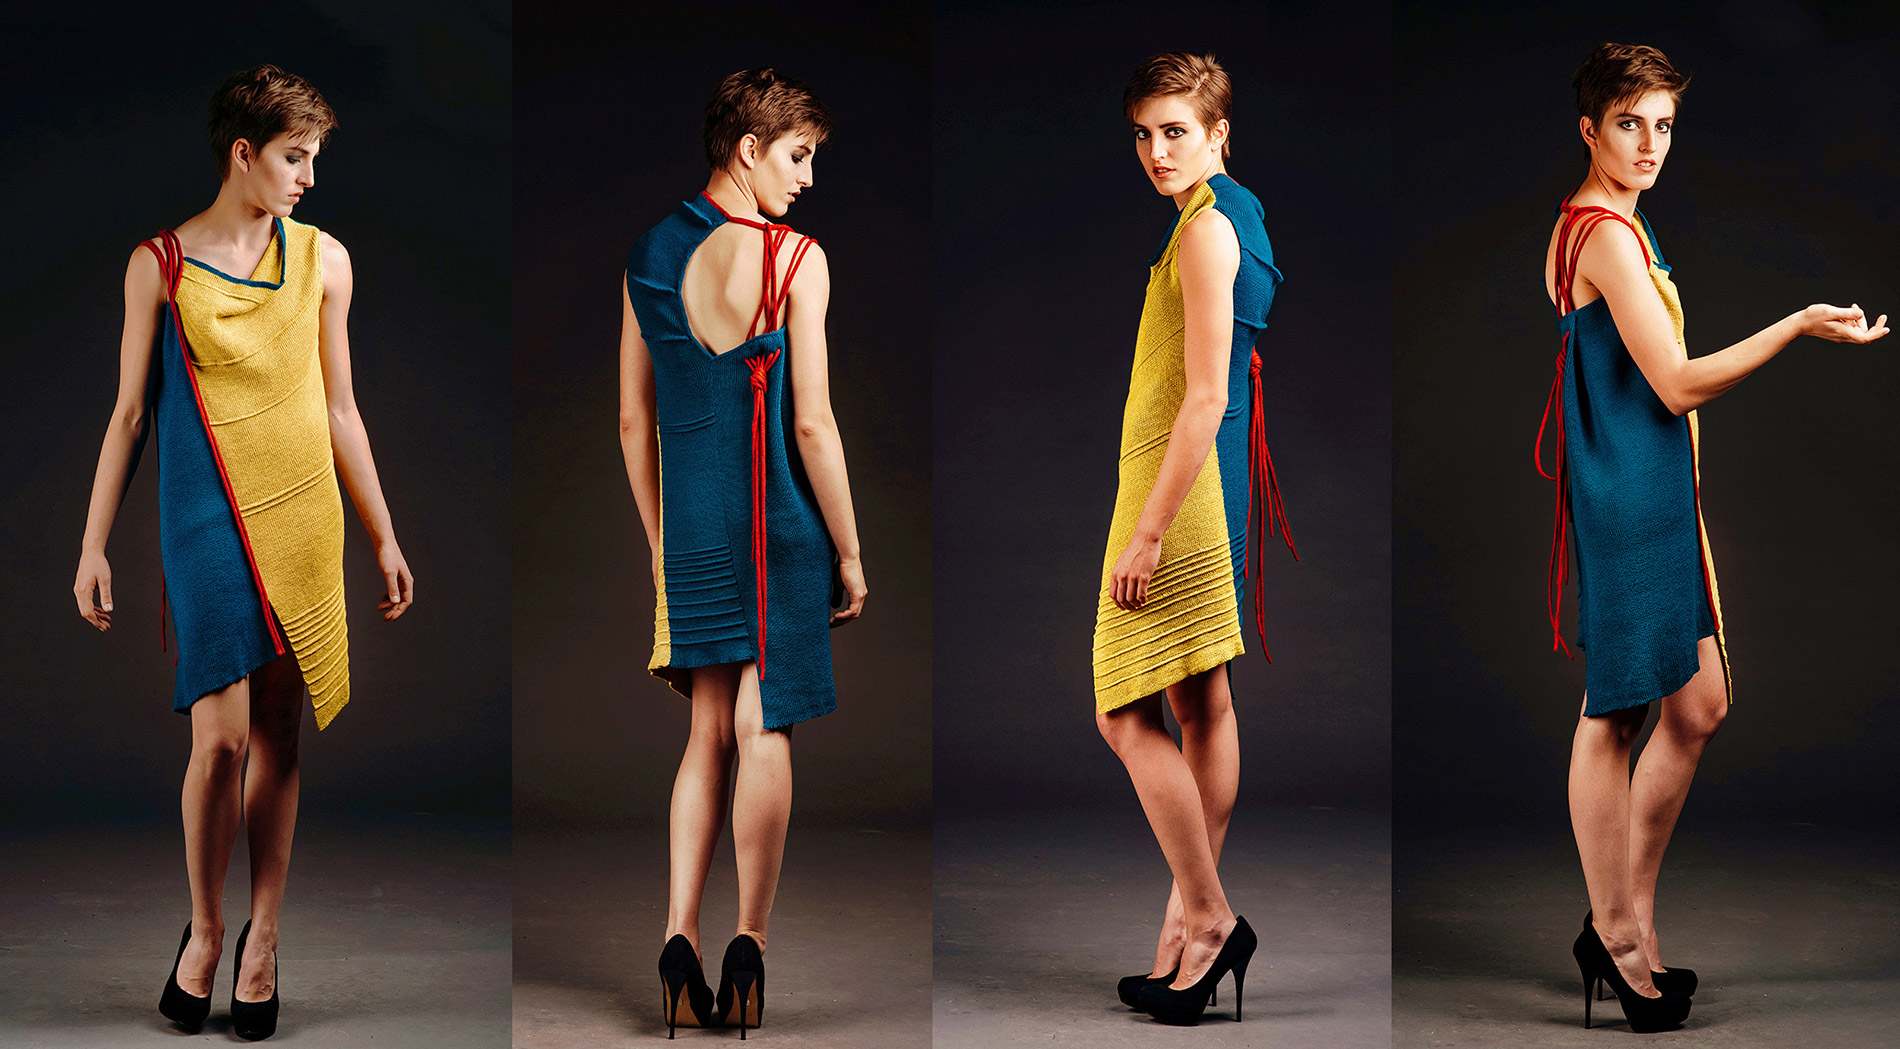 Design by Anny Chang titled Cast On Cast Off II, sleeveless knitted dress to the knee in blue, red and yellow